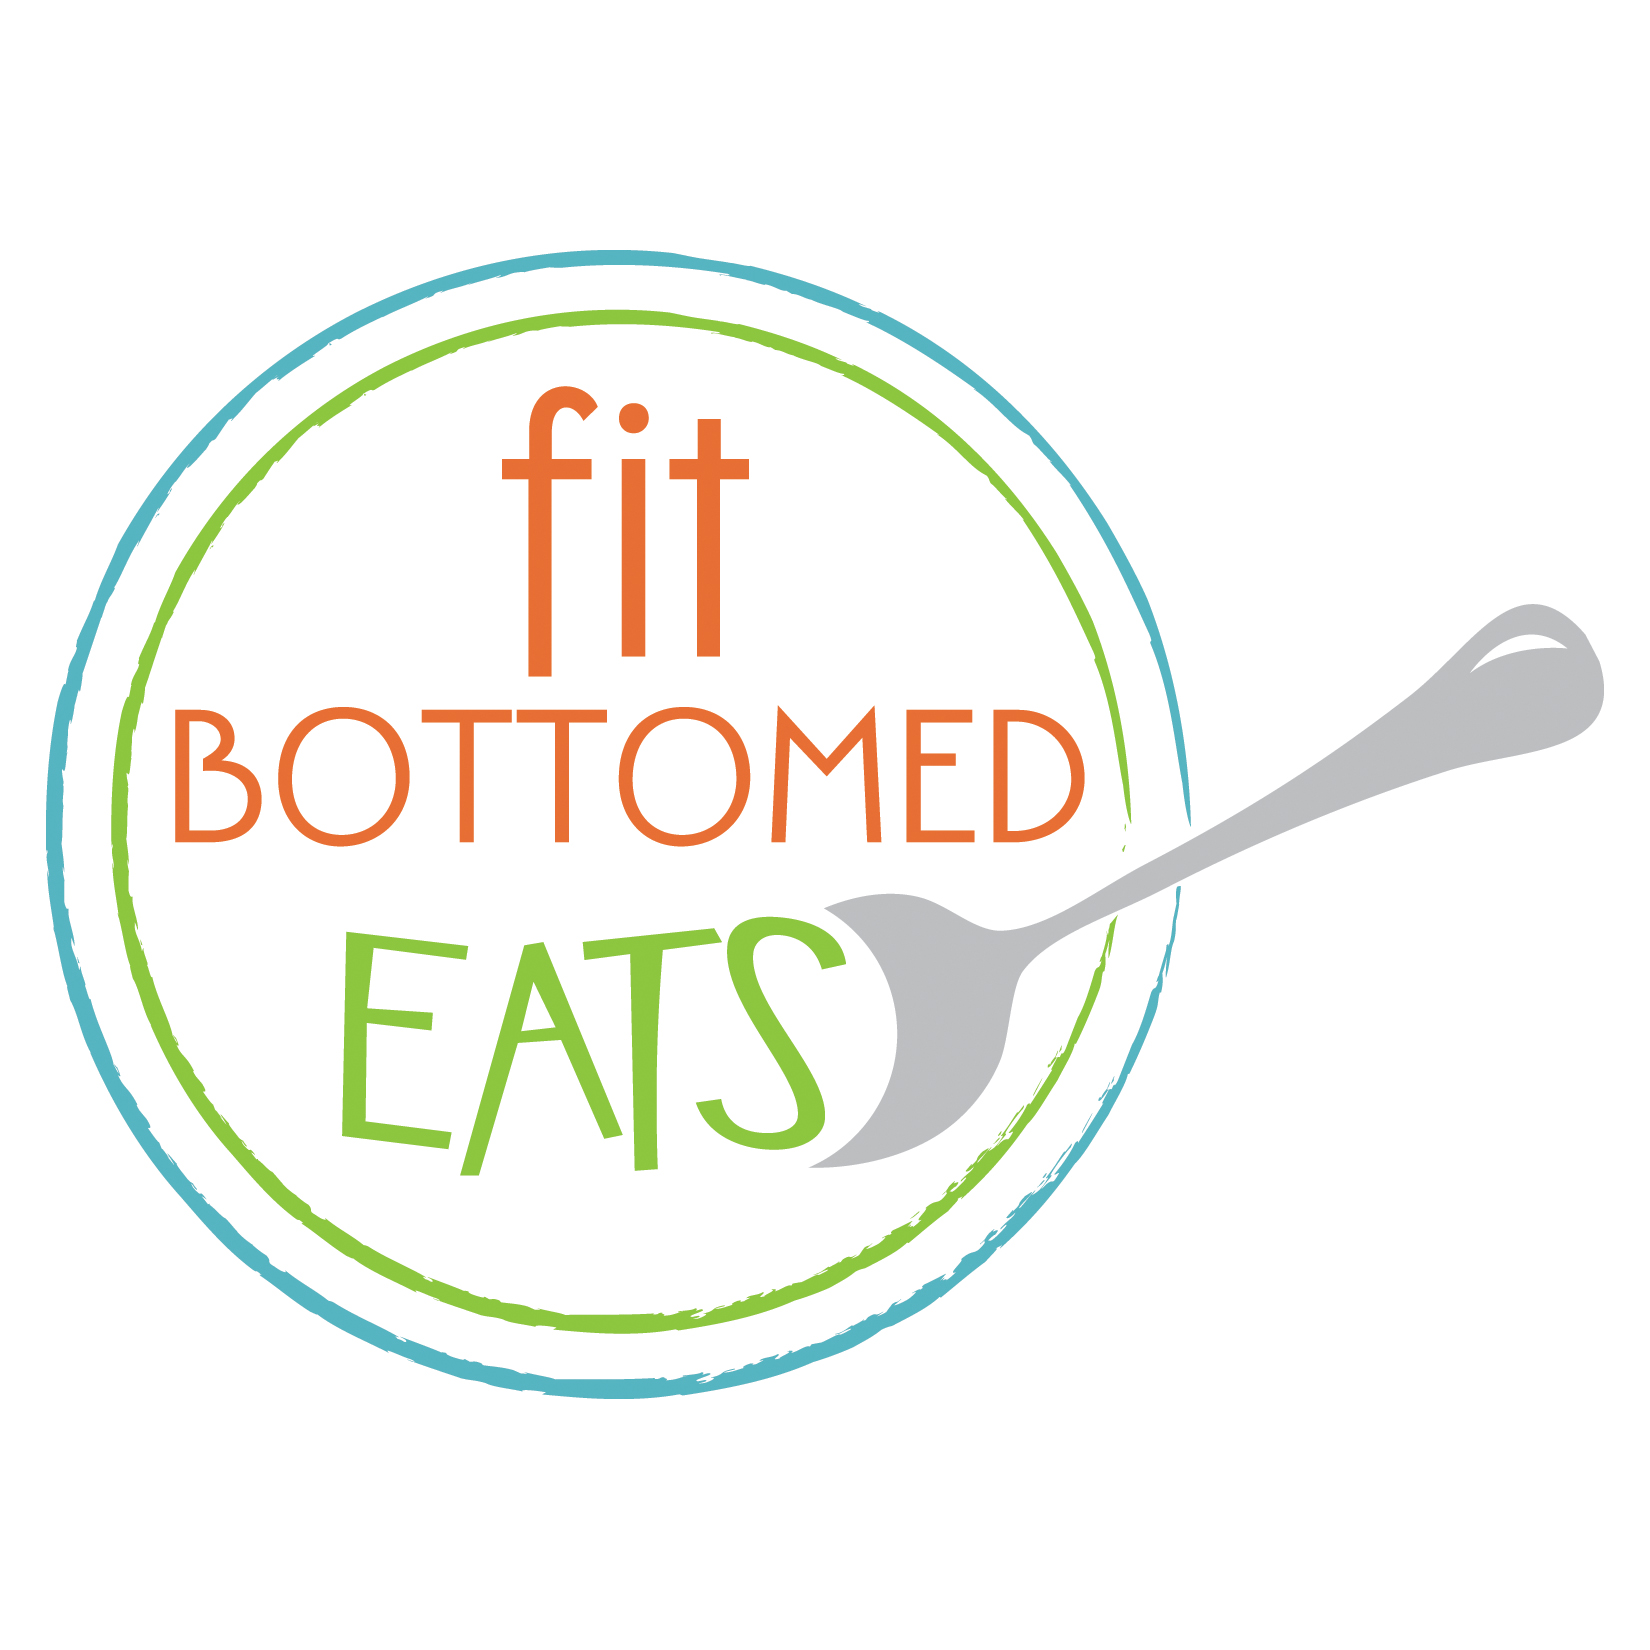 FitBottomEats